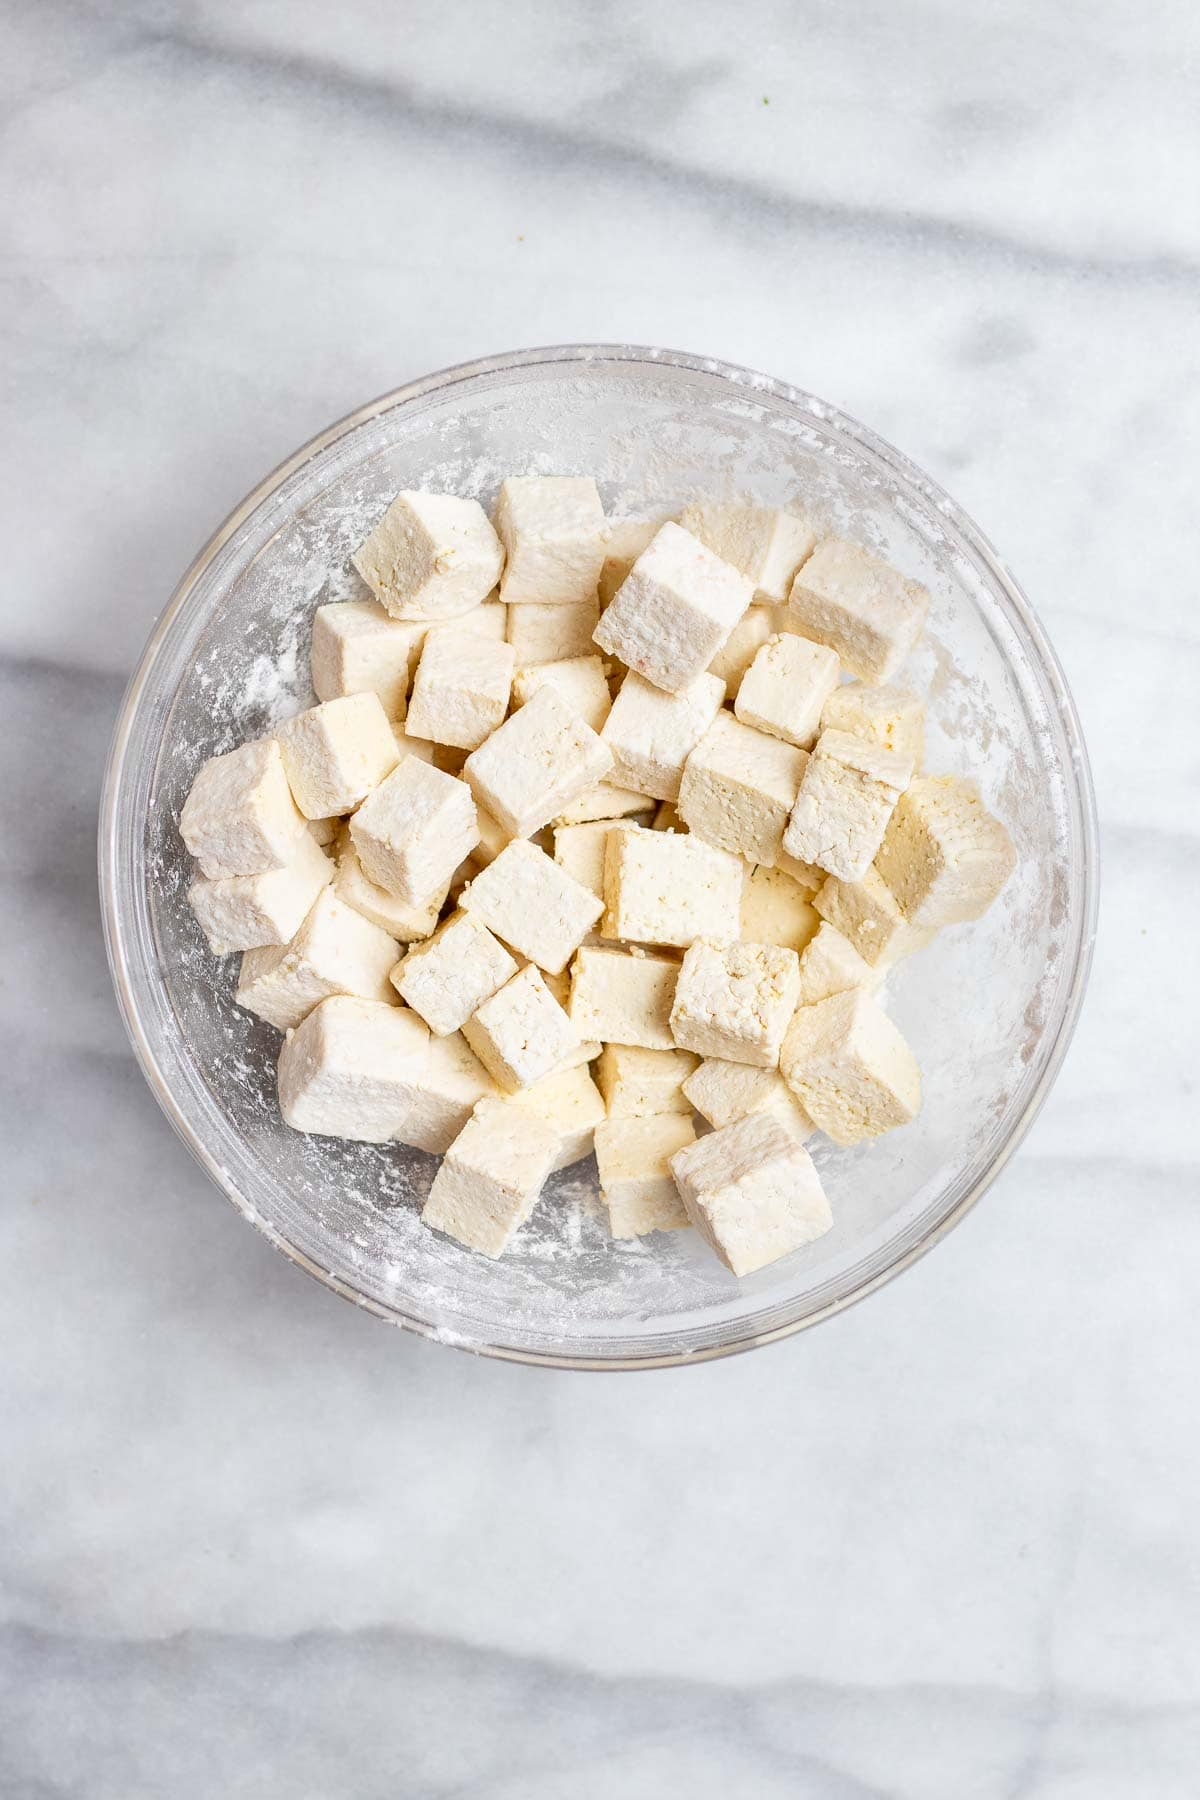 Glass bowl with cubbed tofu.